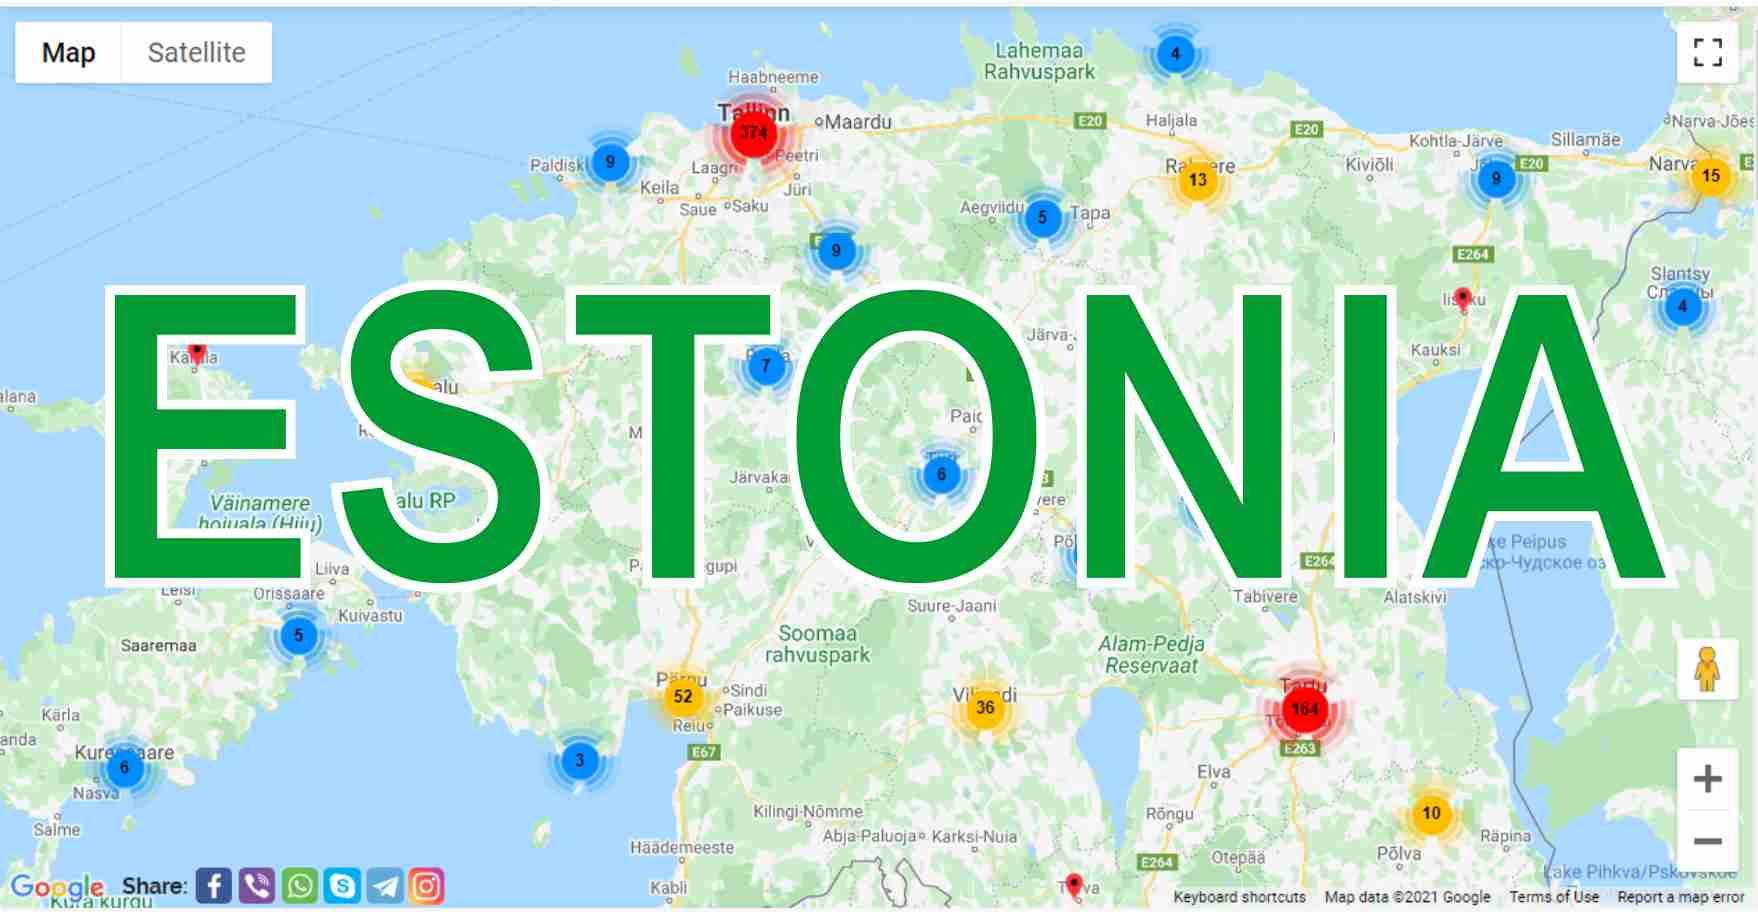 Estonia: what to see in different cities, what are they